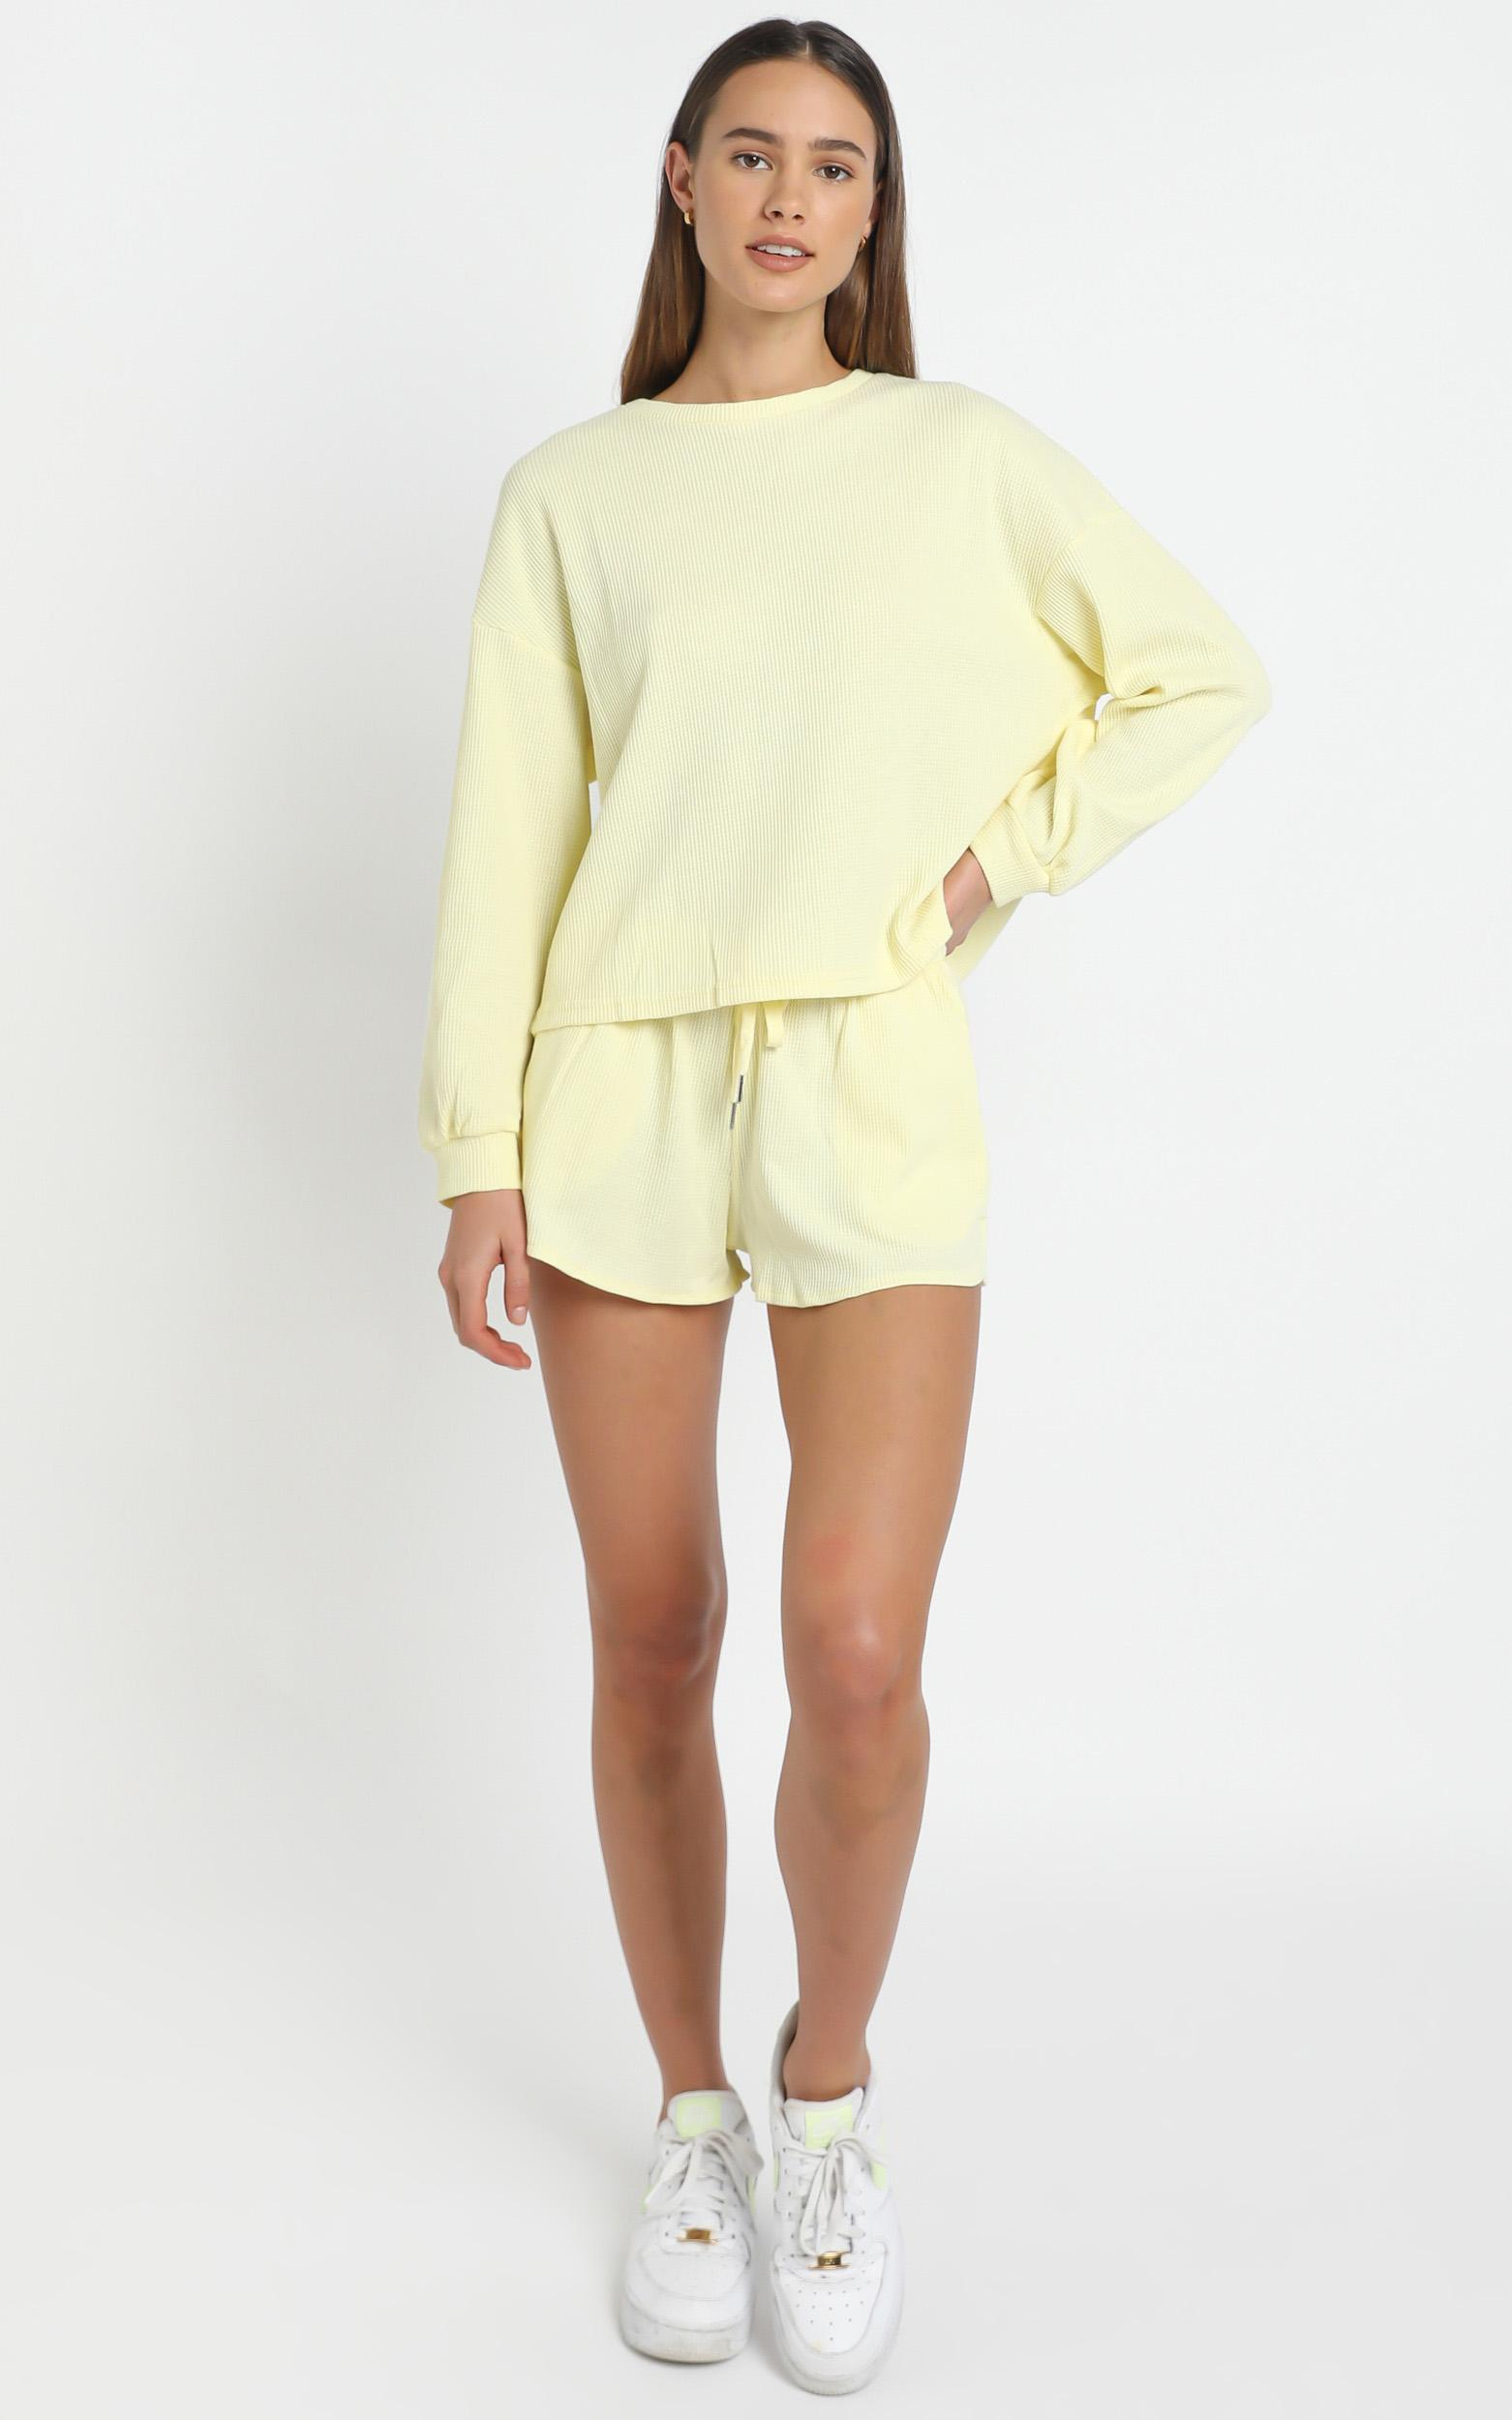 Millie Two Piece Set in Pastel Yellow - 12 (L), Yellow, hi-res image number null